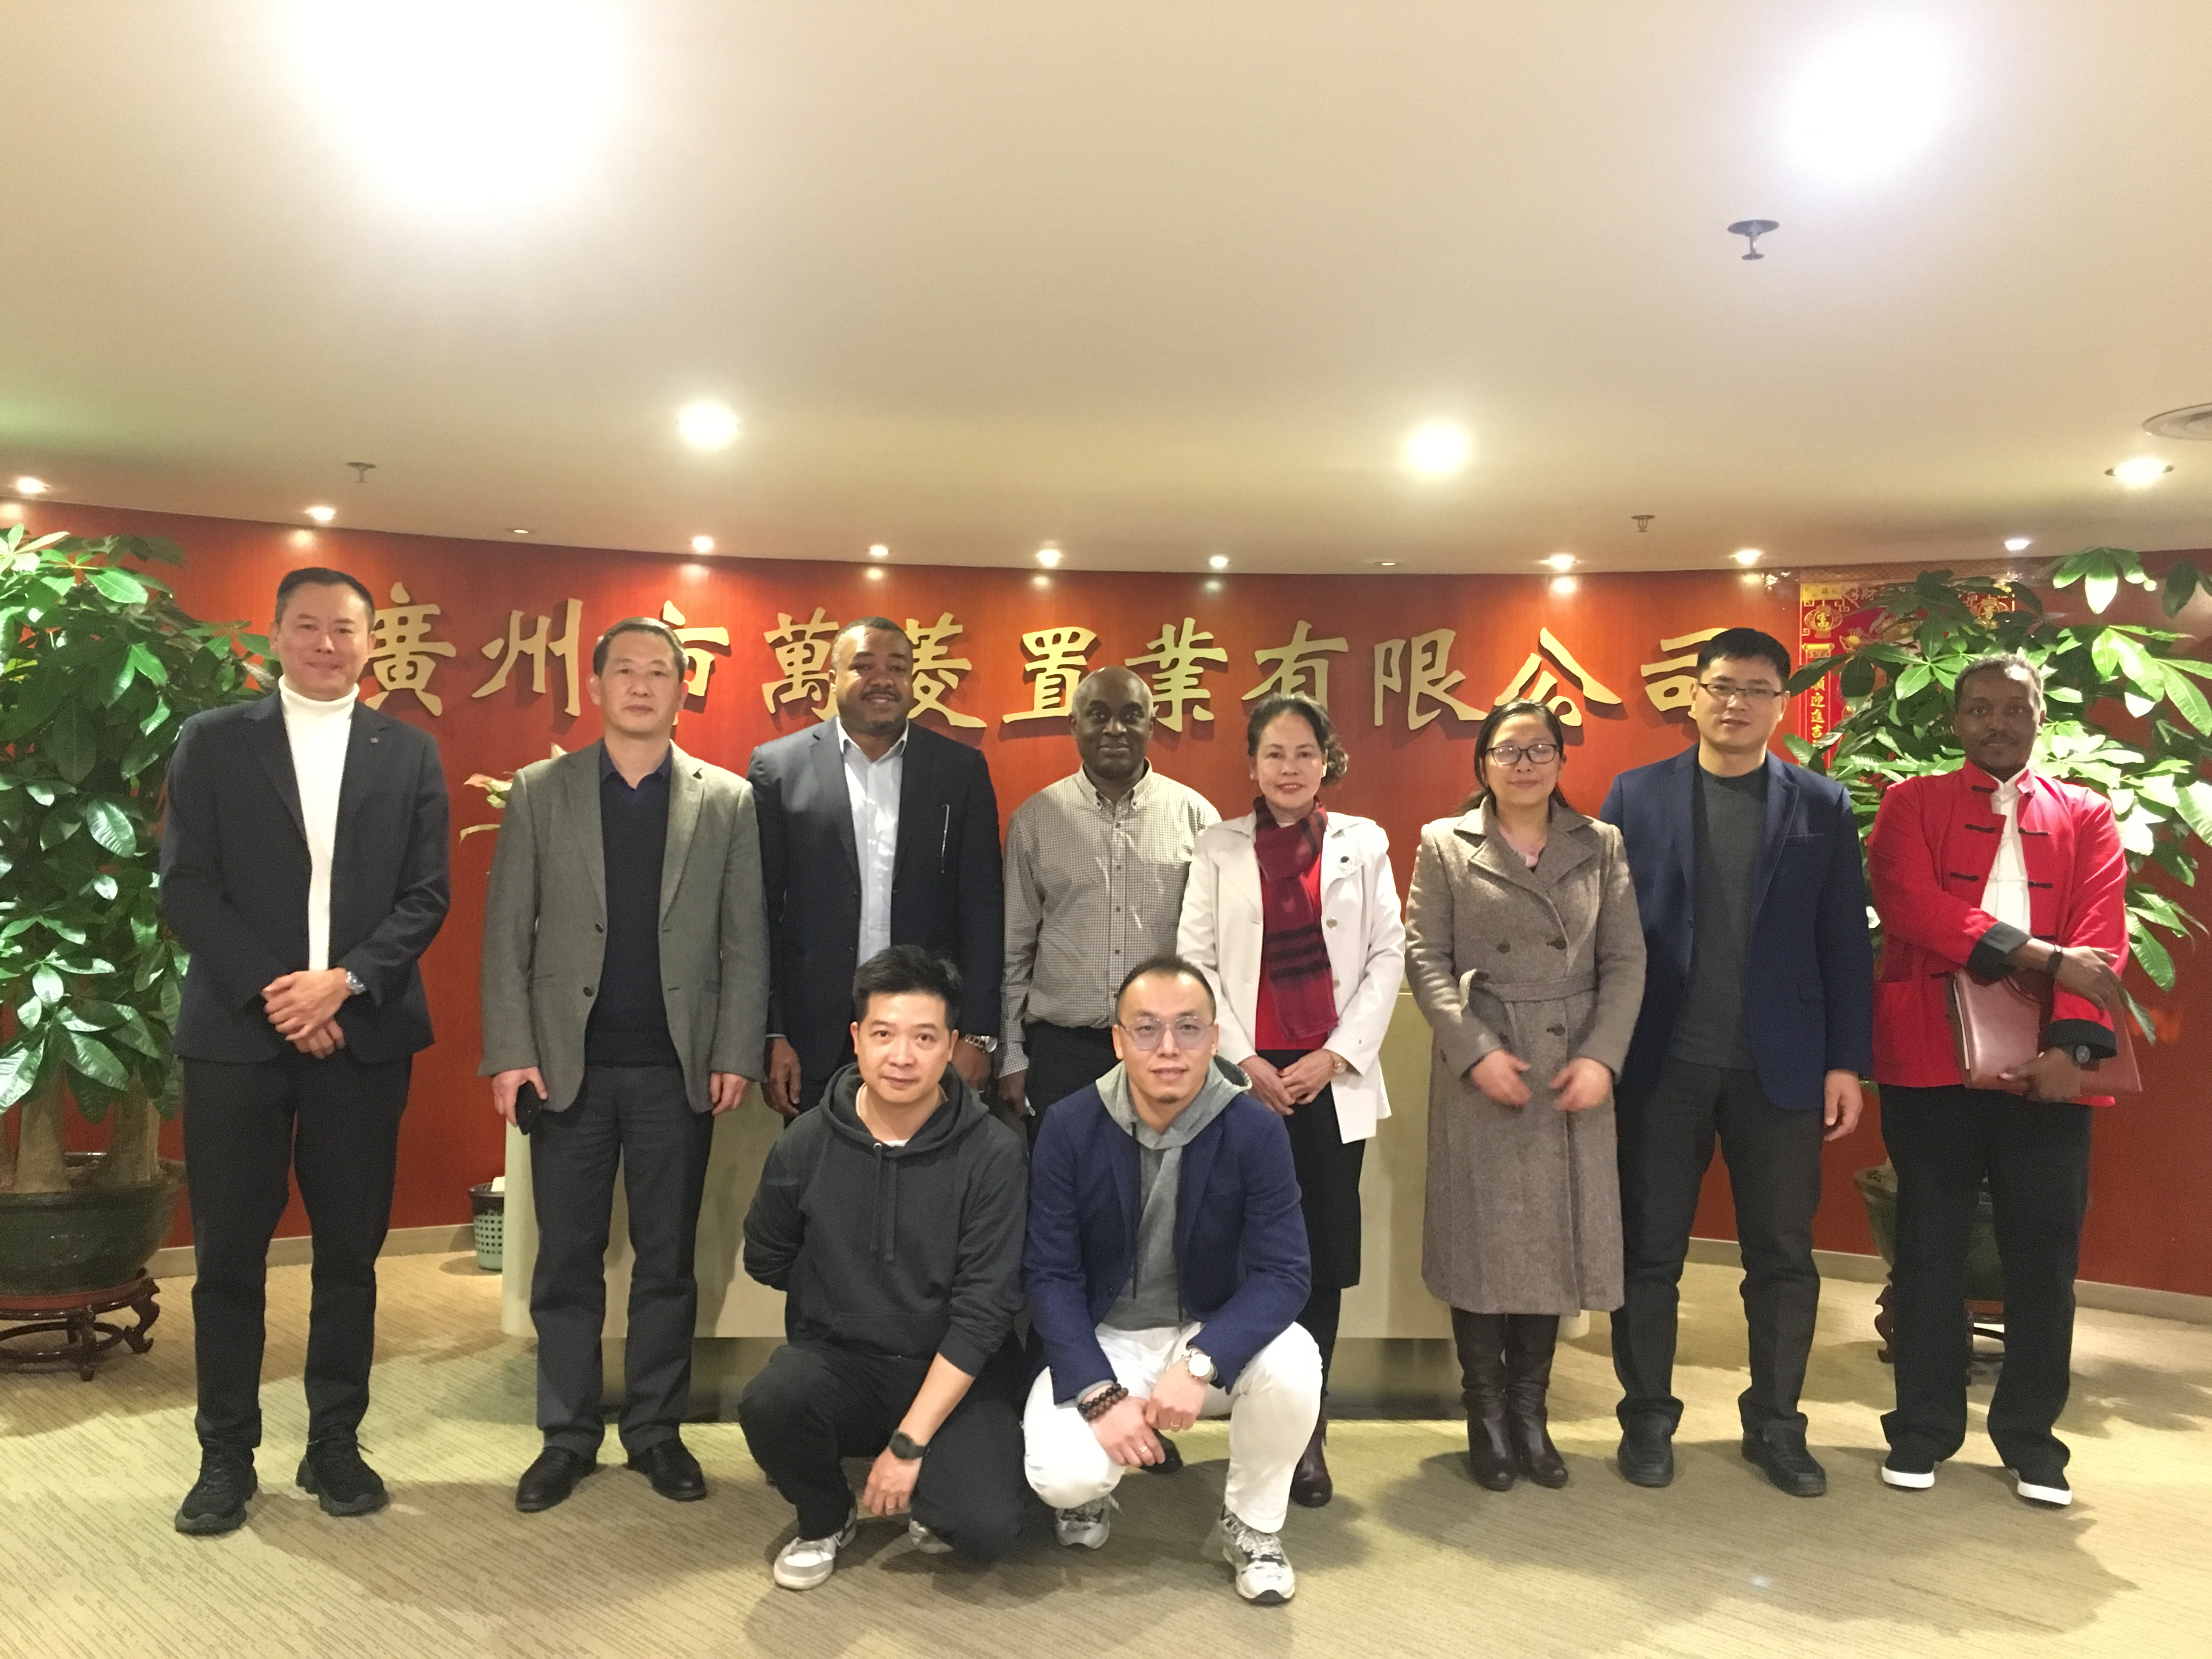 One belt, one road, business visit group visiting Wan Ling square